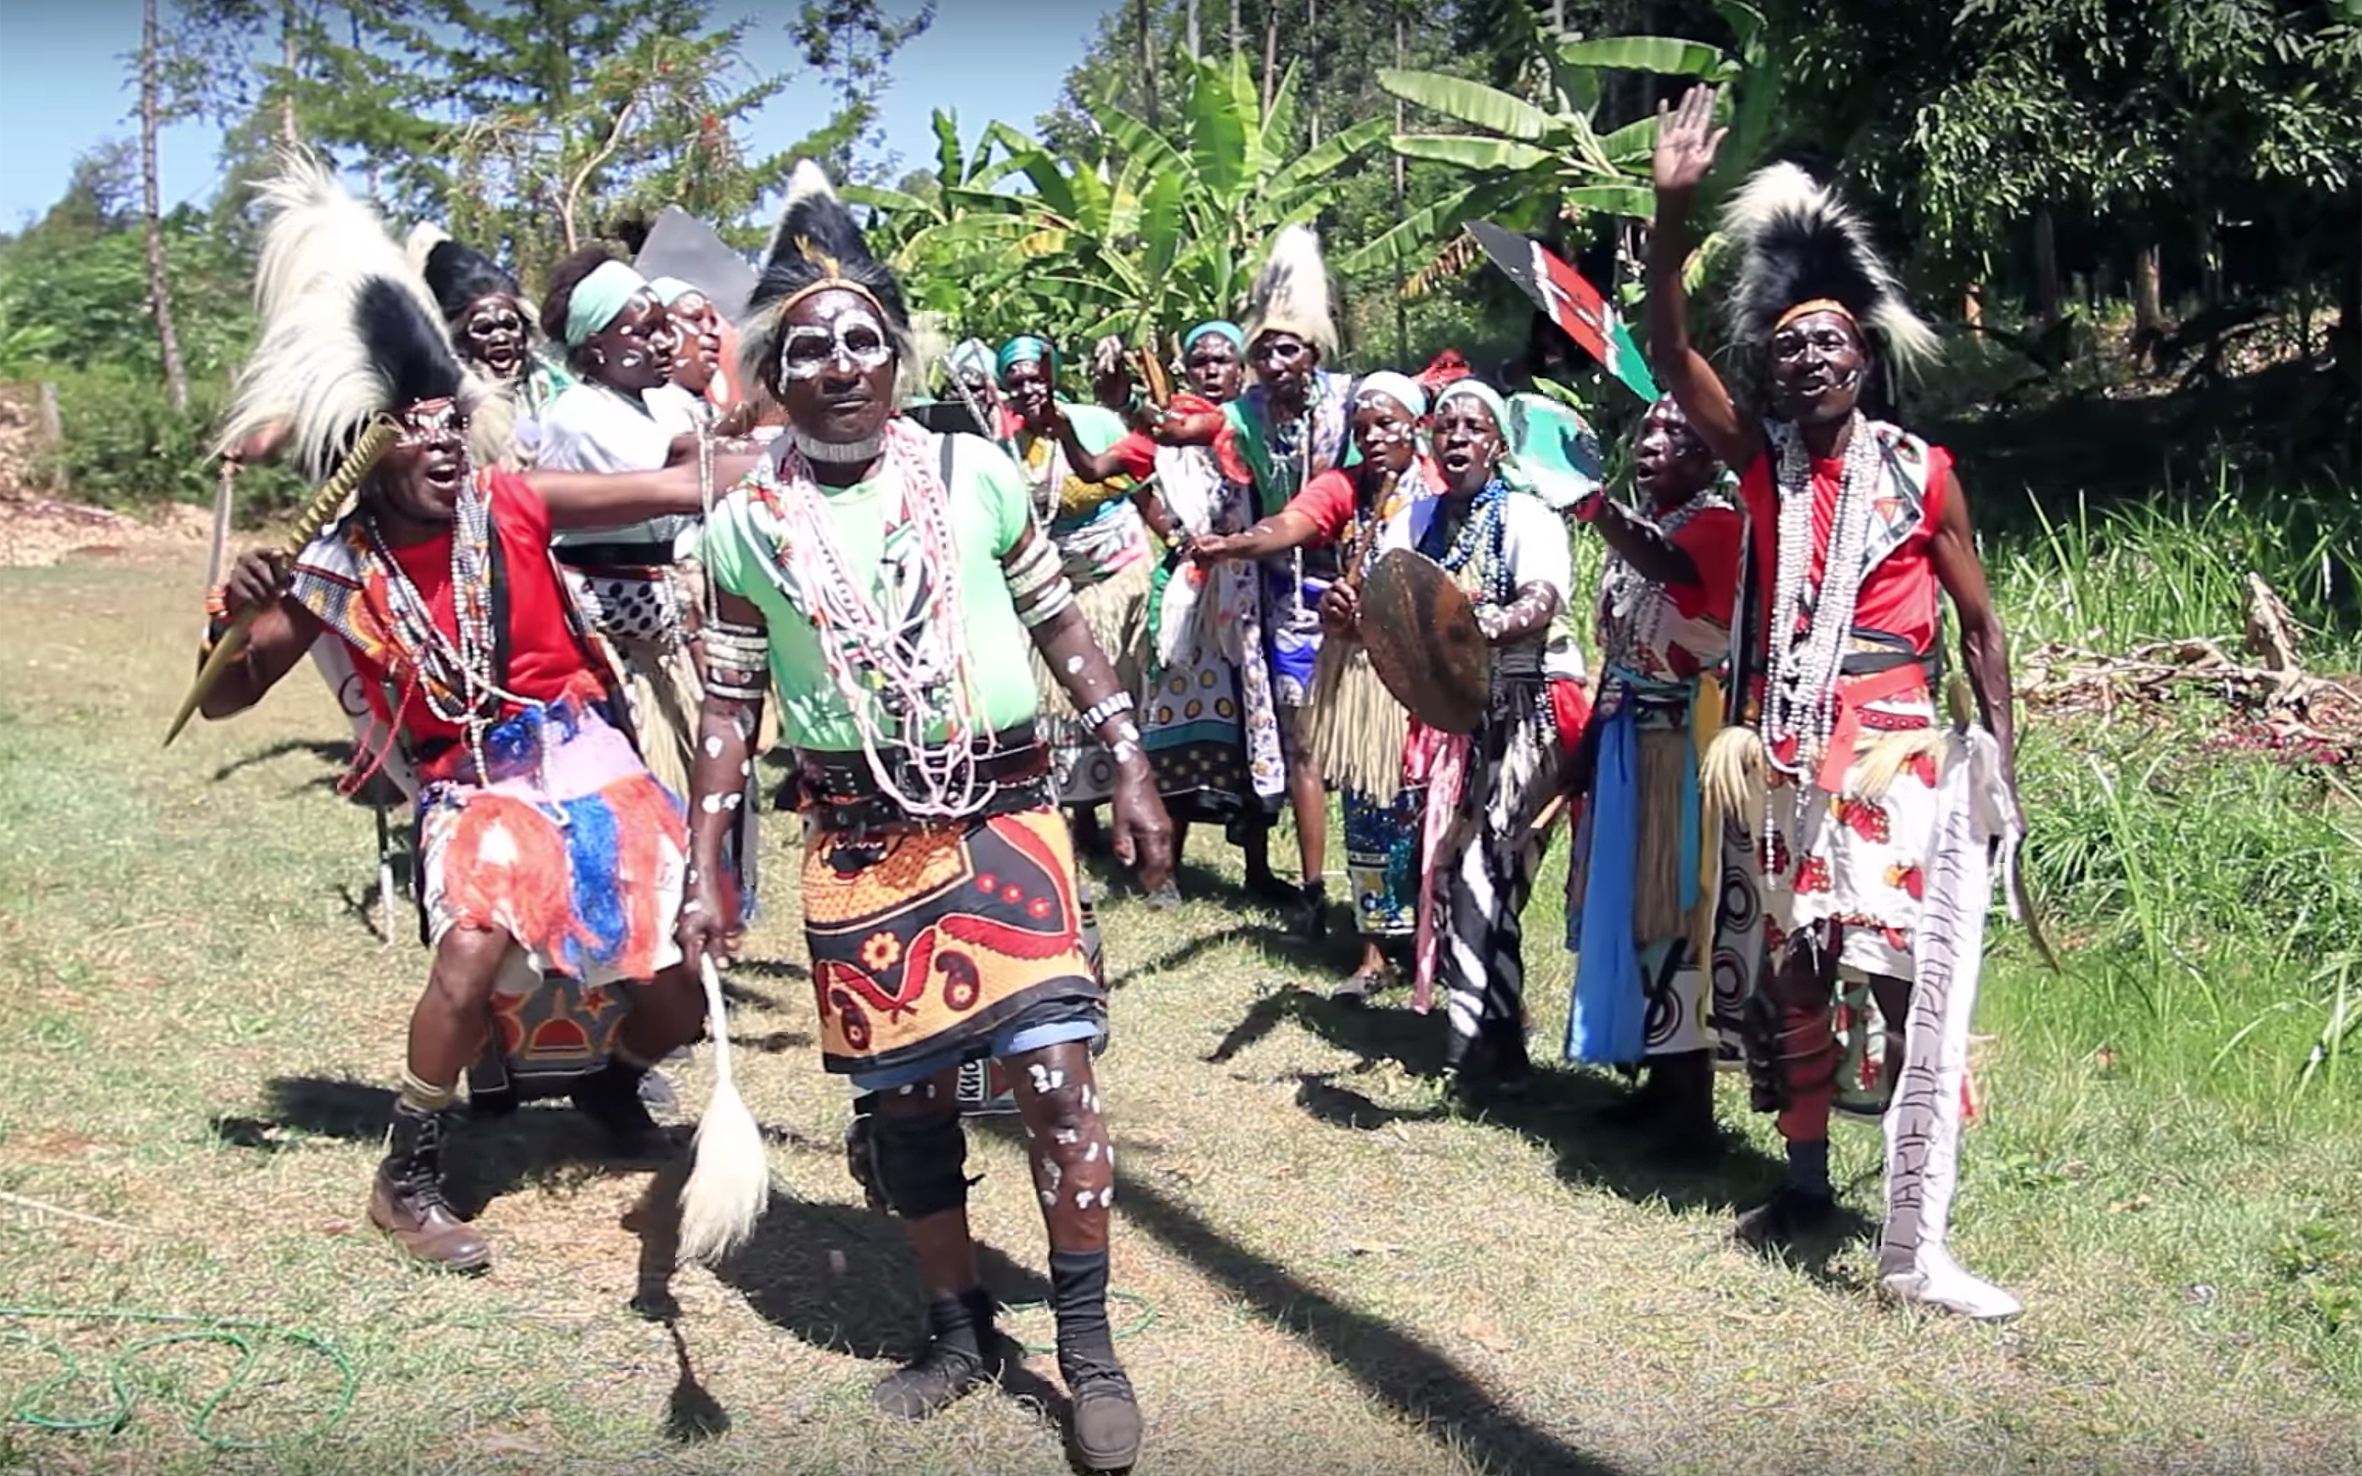 578.Mariene Dances / Kenya - Mariene Dances are traditional dances of Mariene people in Kenya.